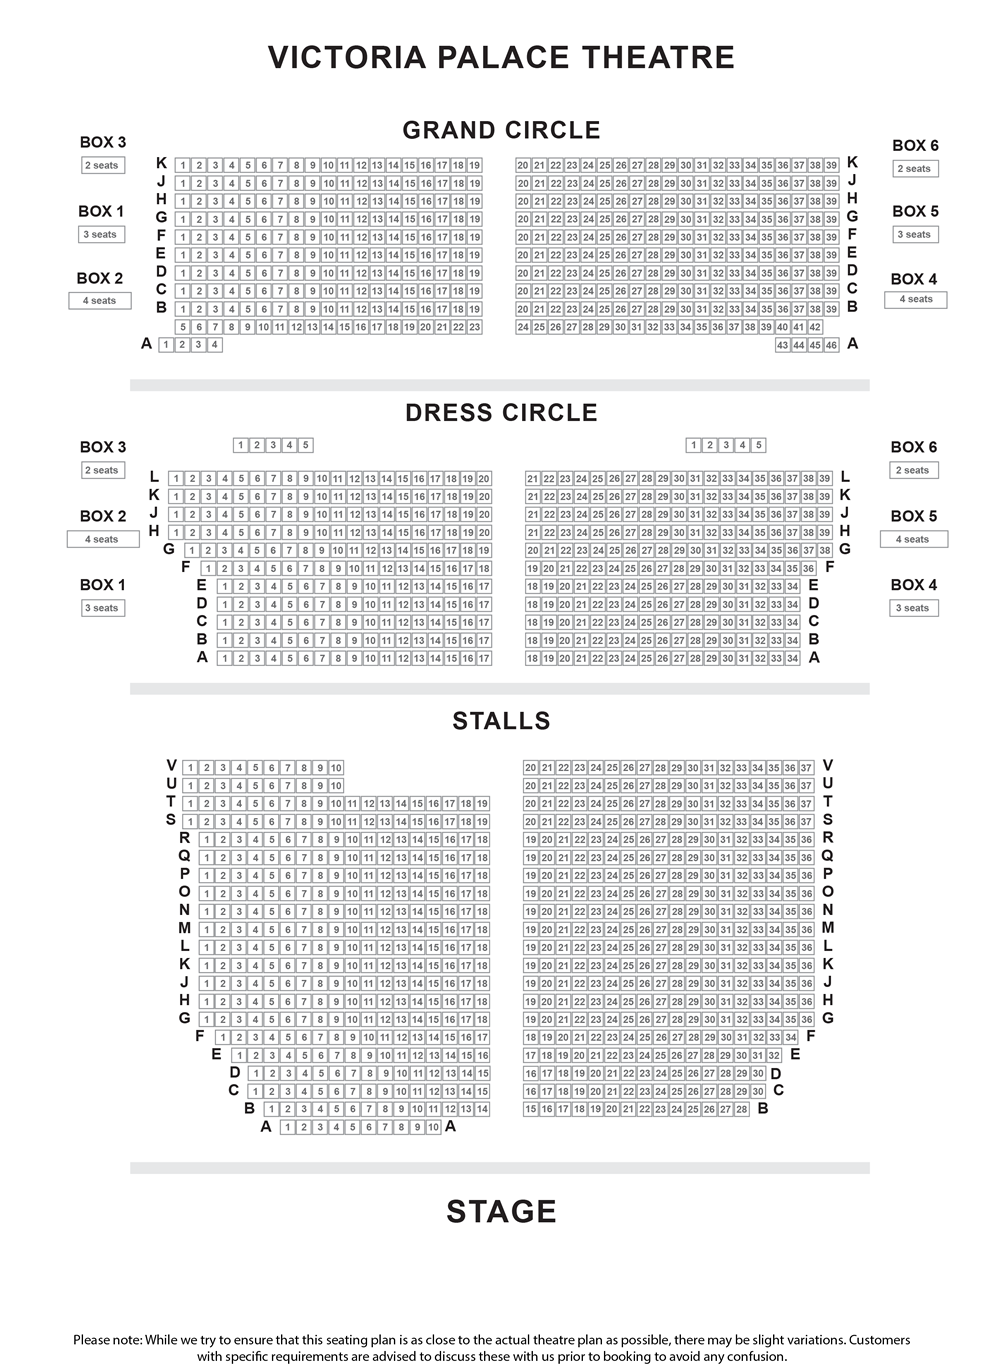 Victoria Palace Theatre seating plan